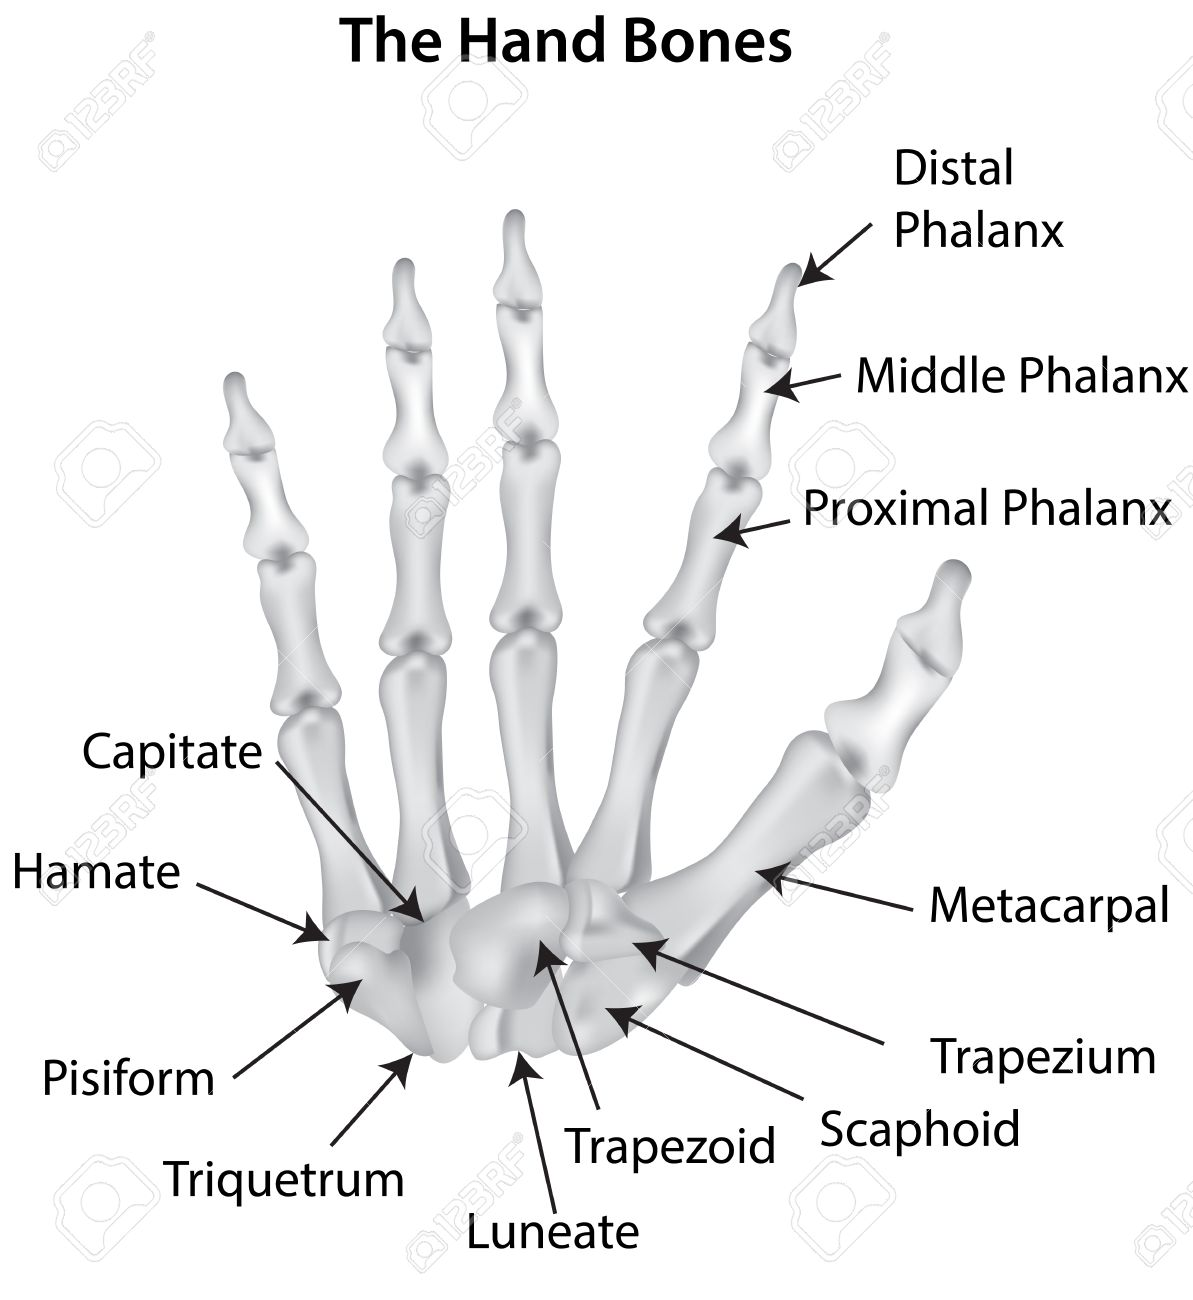 the hand bones labeled diagram royalty free cliparts, vectors, and